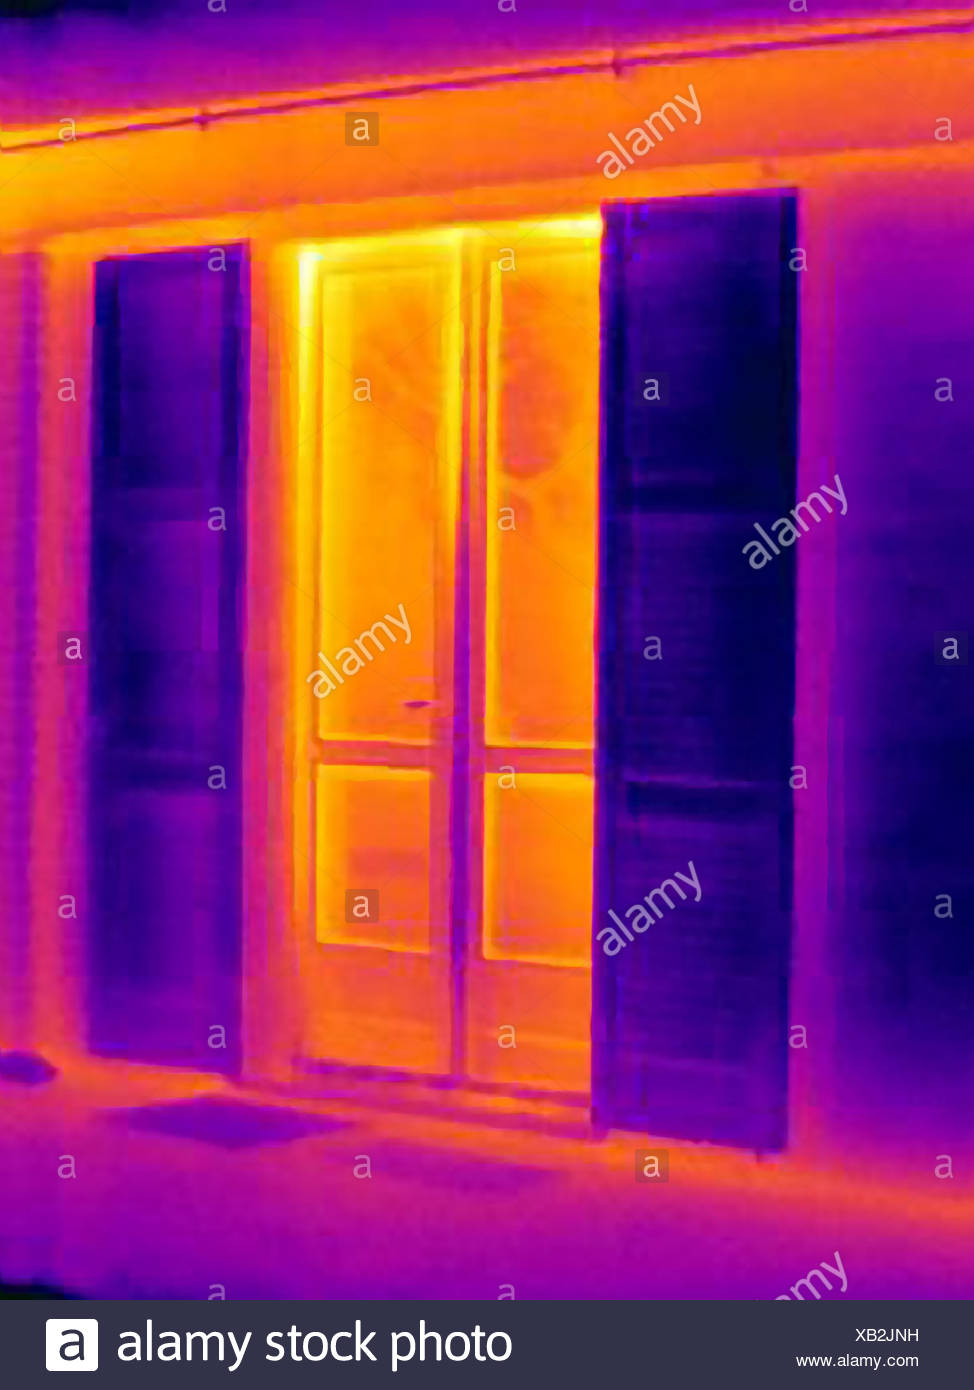 Thermal image of doors - Stock Image